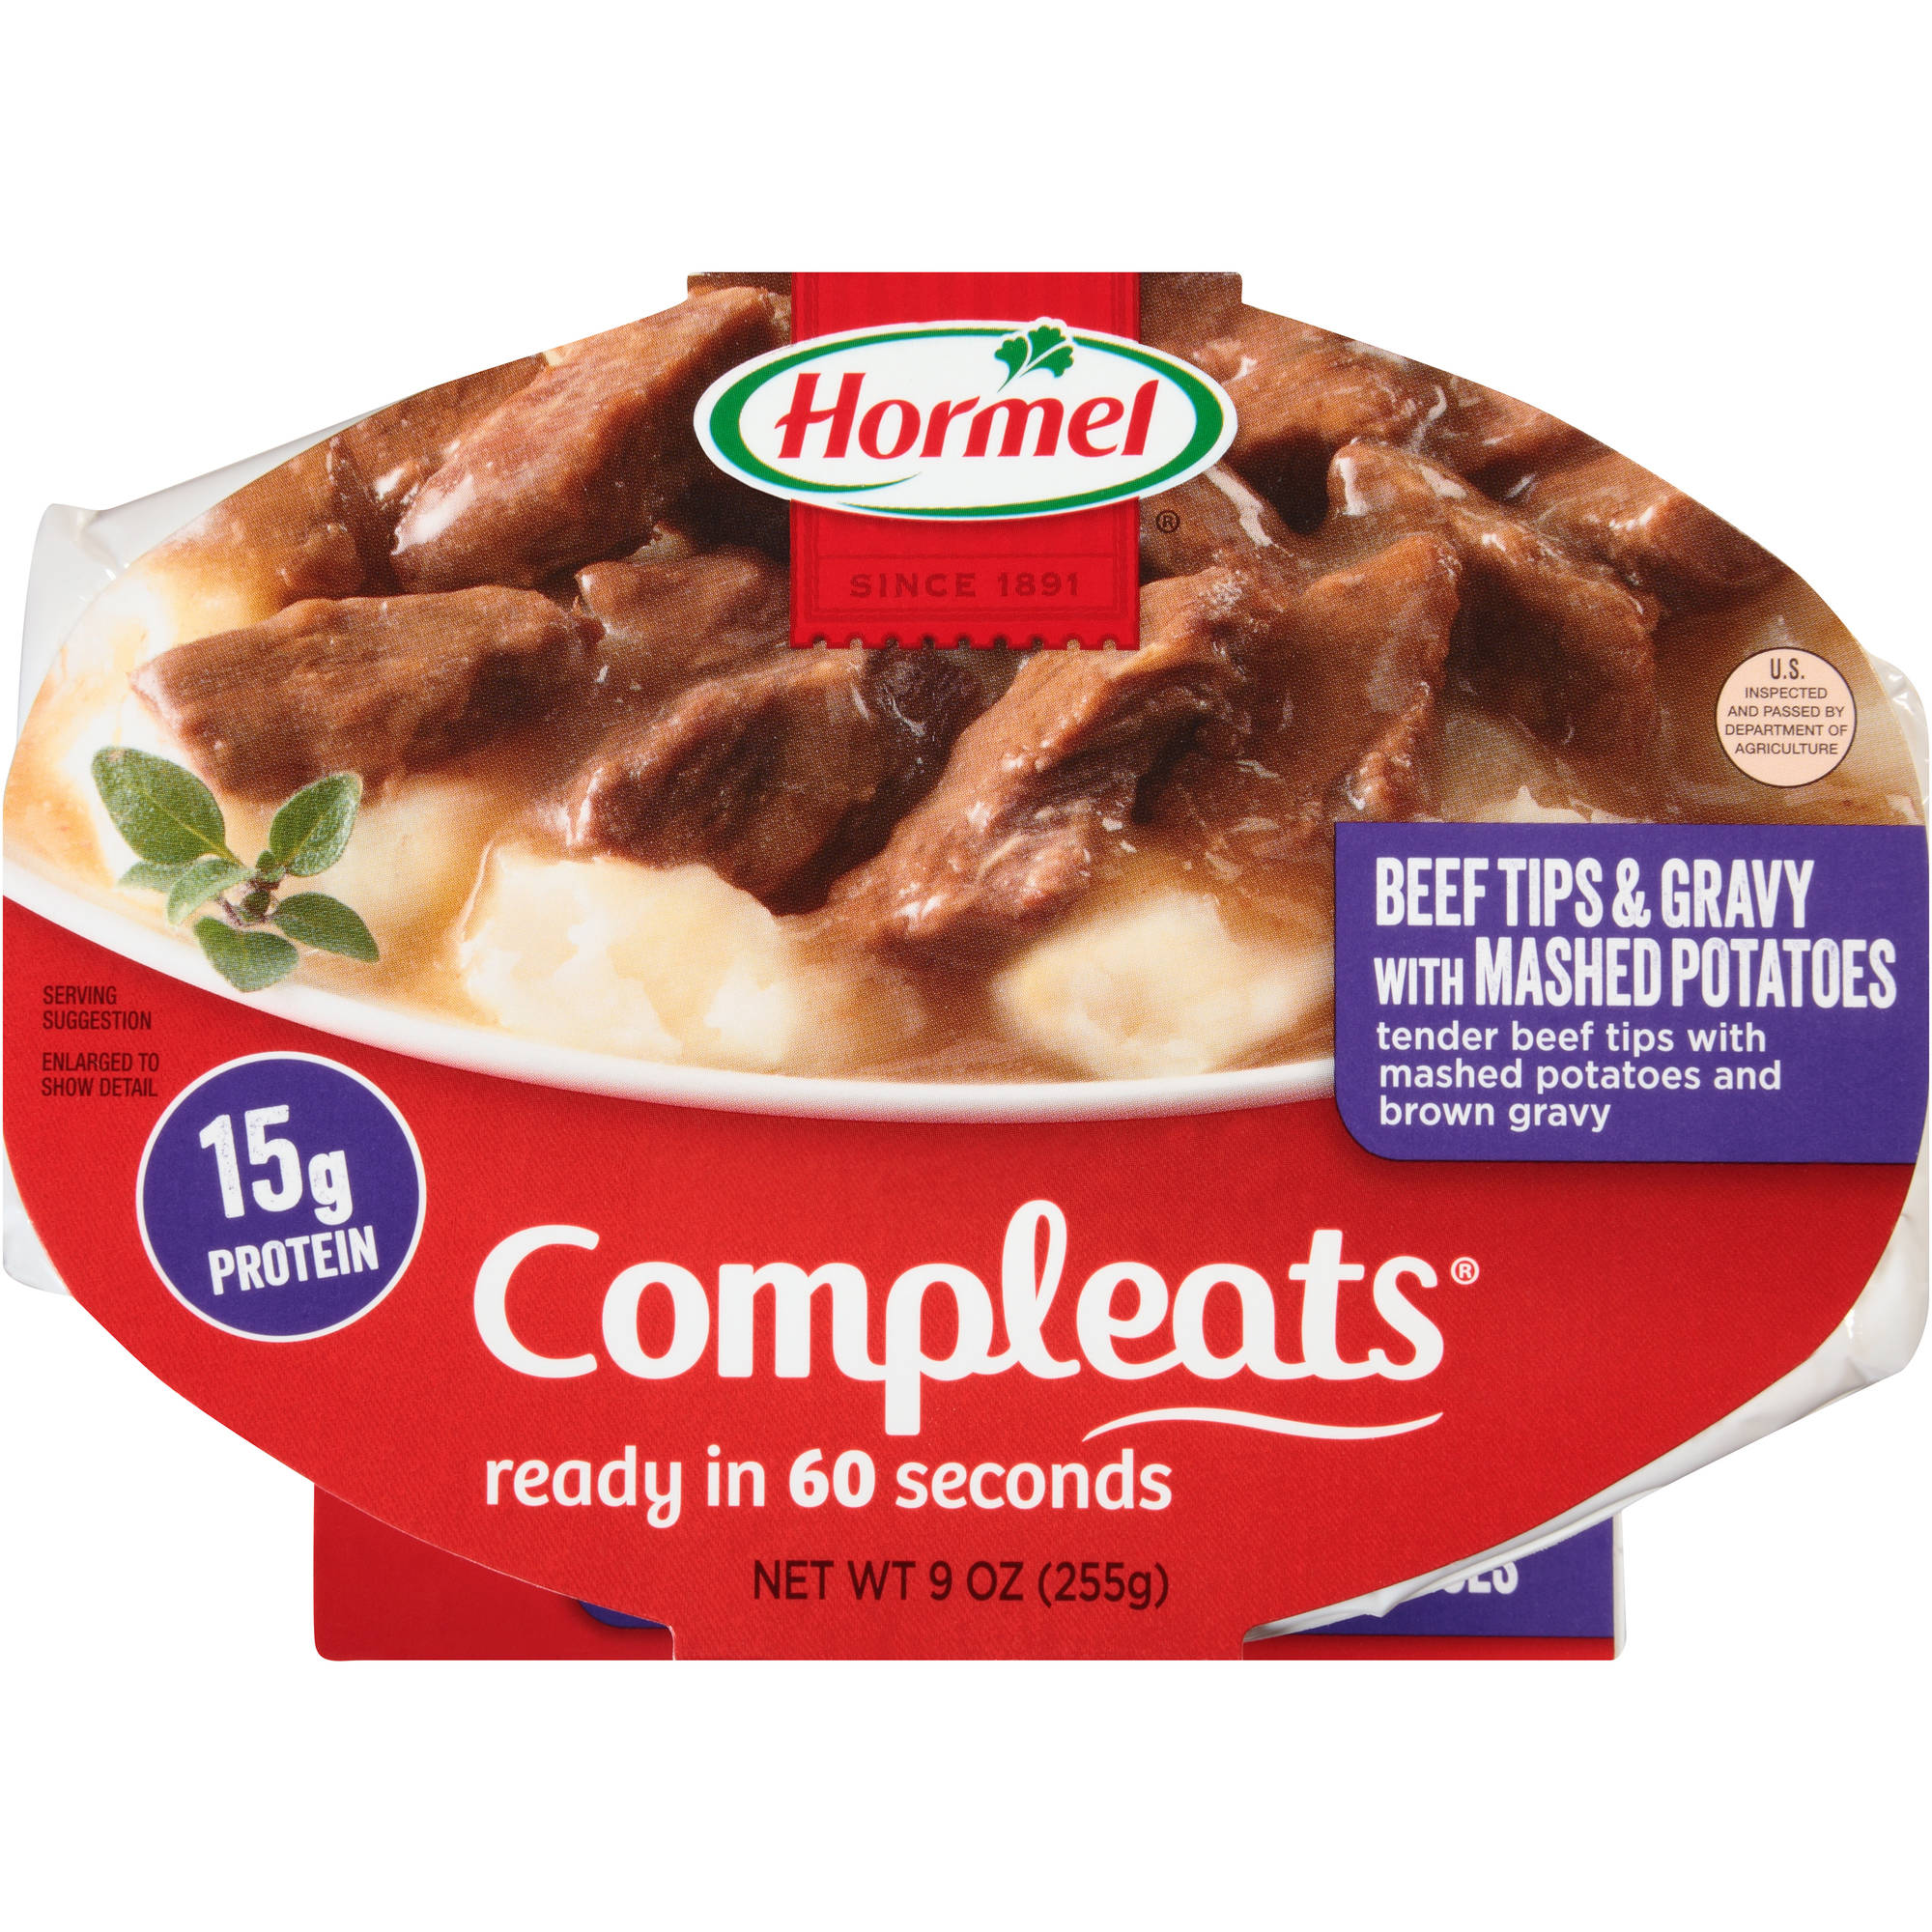 Hormel Compleats Beef Tips & Gravy with Mashed Potatoes, 9 oz